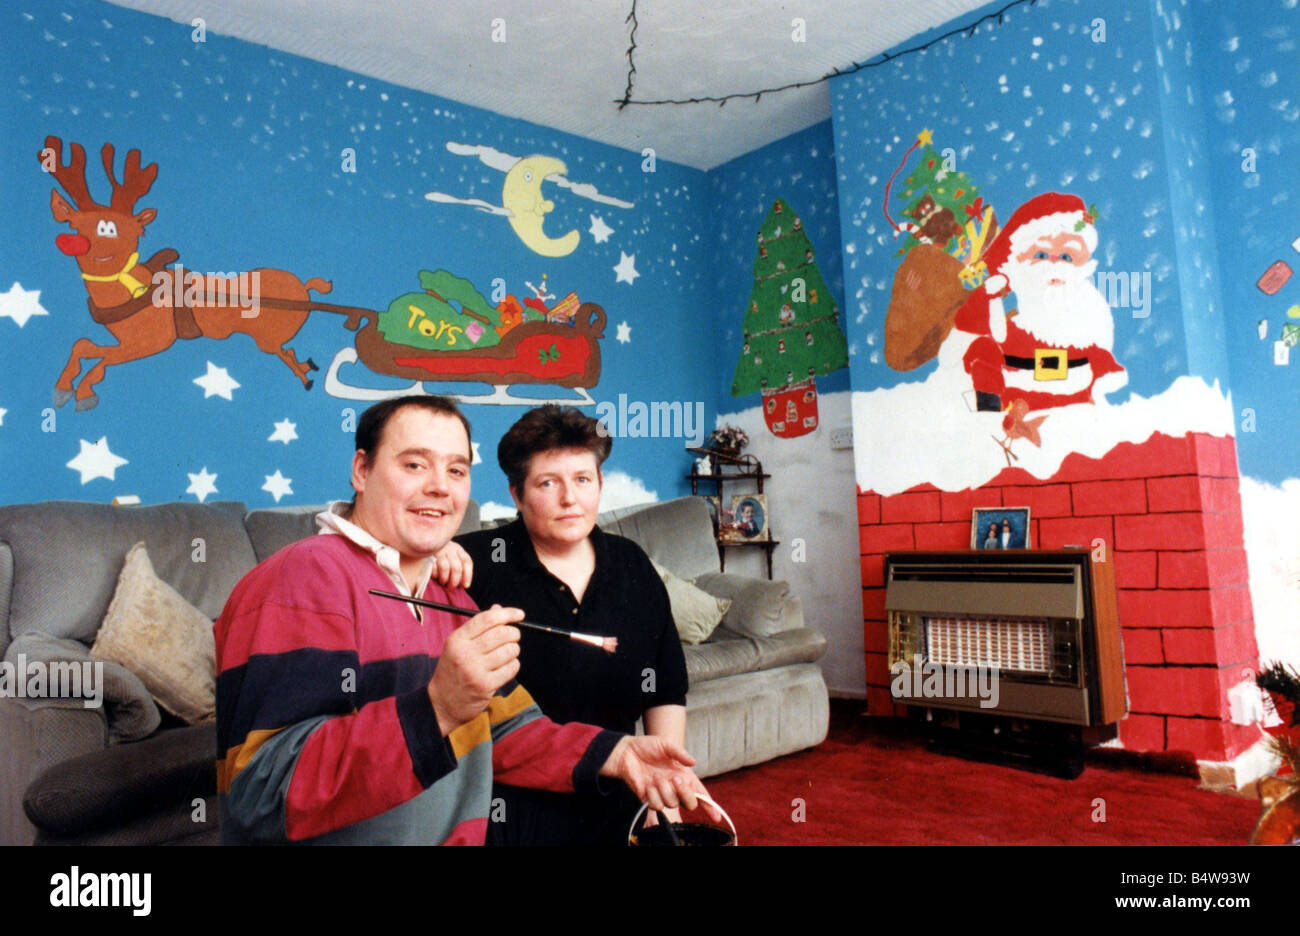 Christmas Phillip And Jane Carter Who Painted Their Own Winter Wonderland In Lounge Of